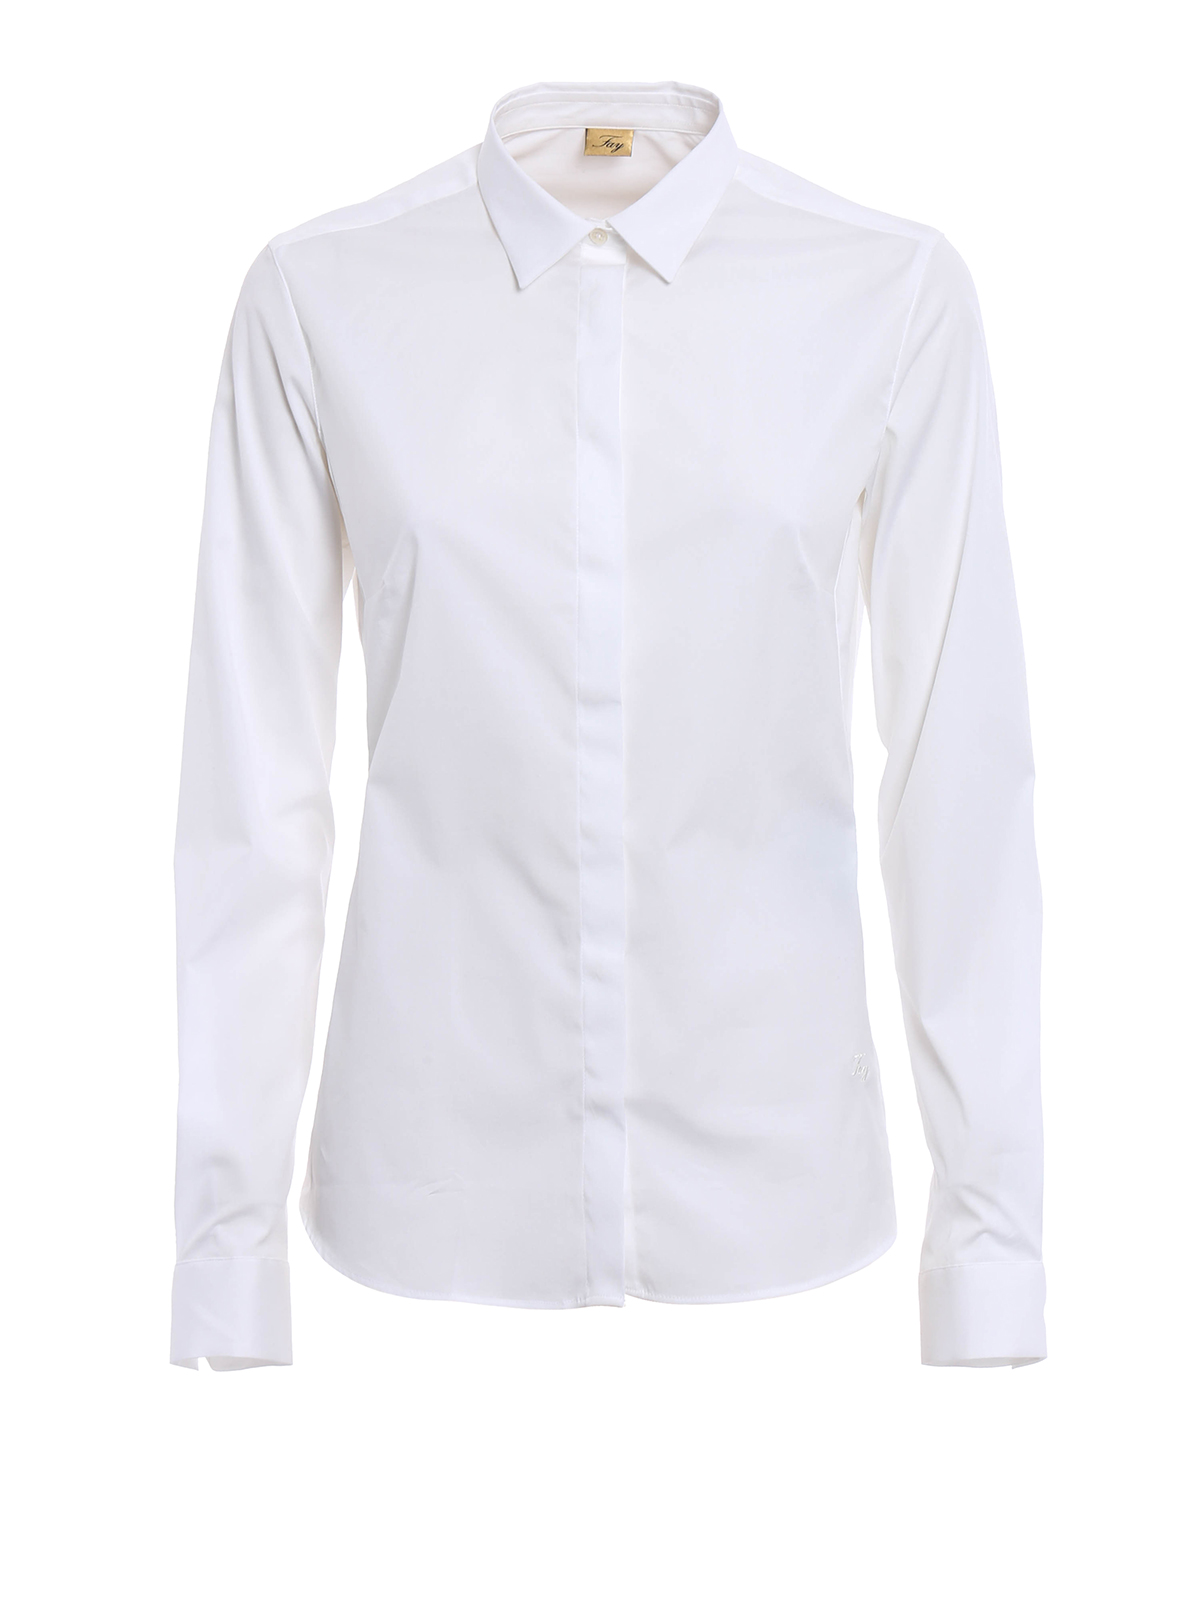 Classic cotton poplin shirt by fay shirts shop online for What is a poplin shirt